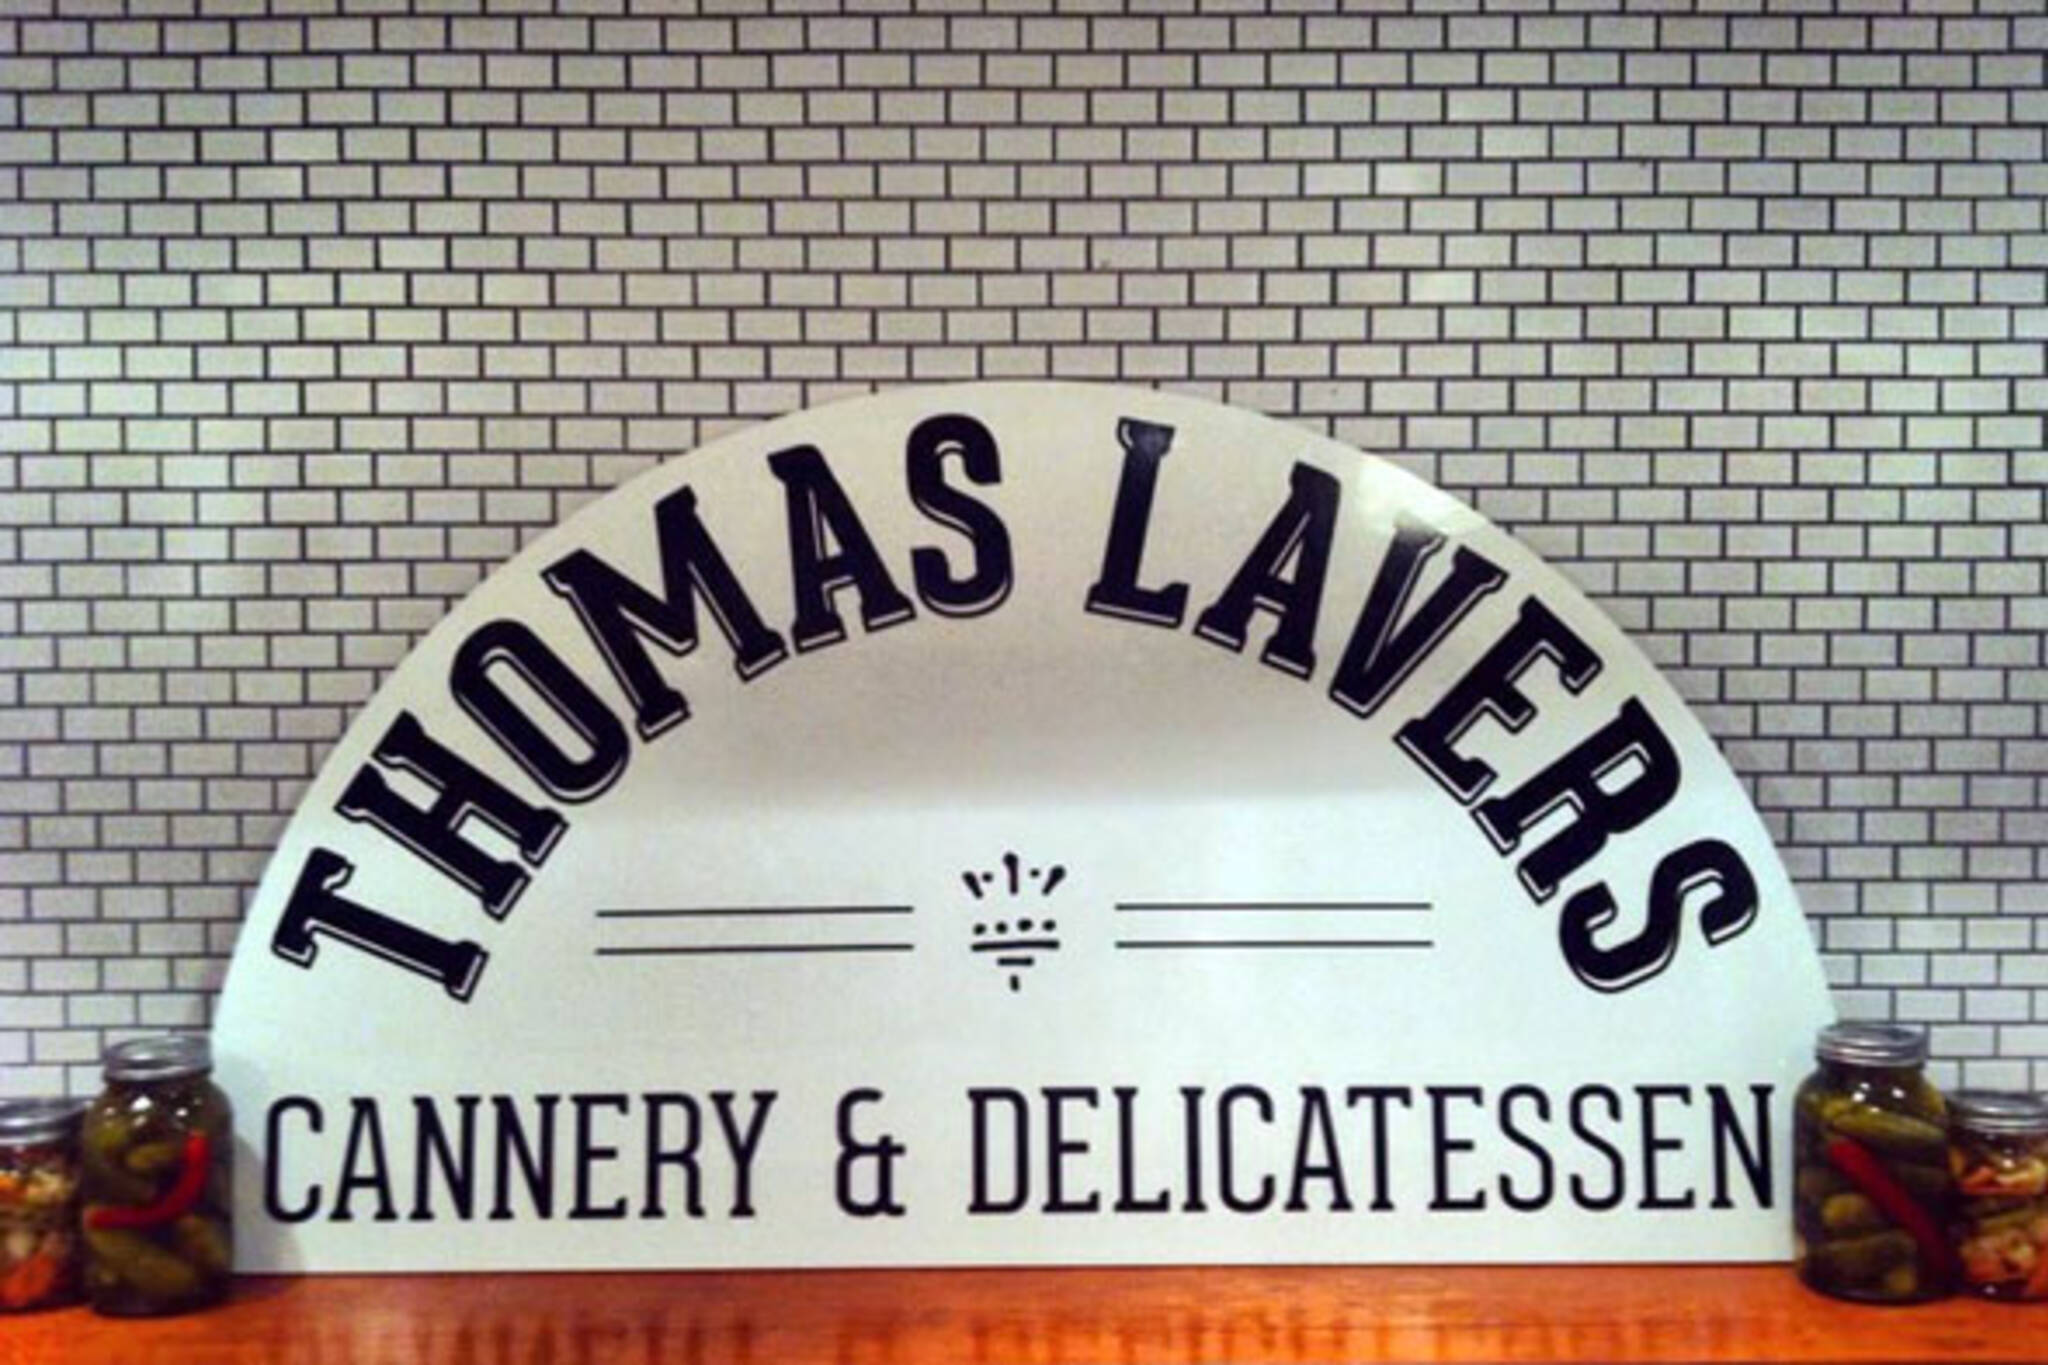 Thomas Lavers Cannery